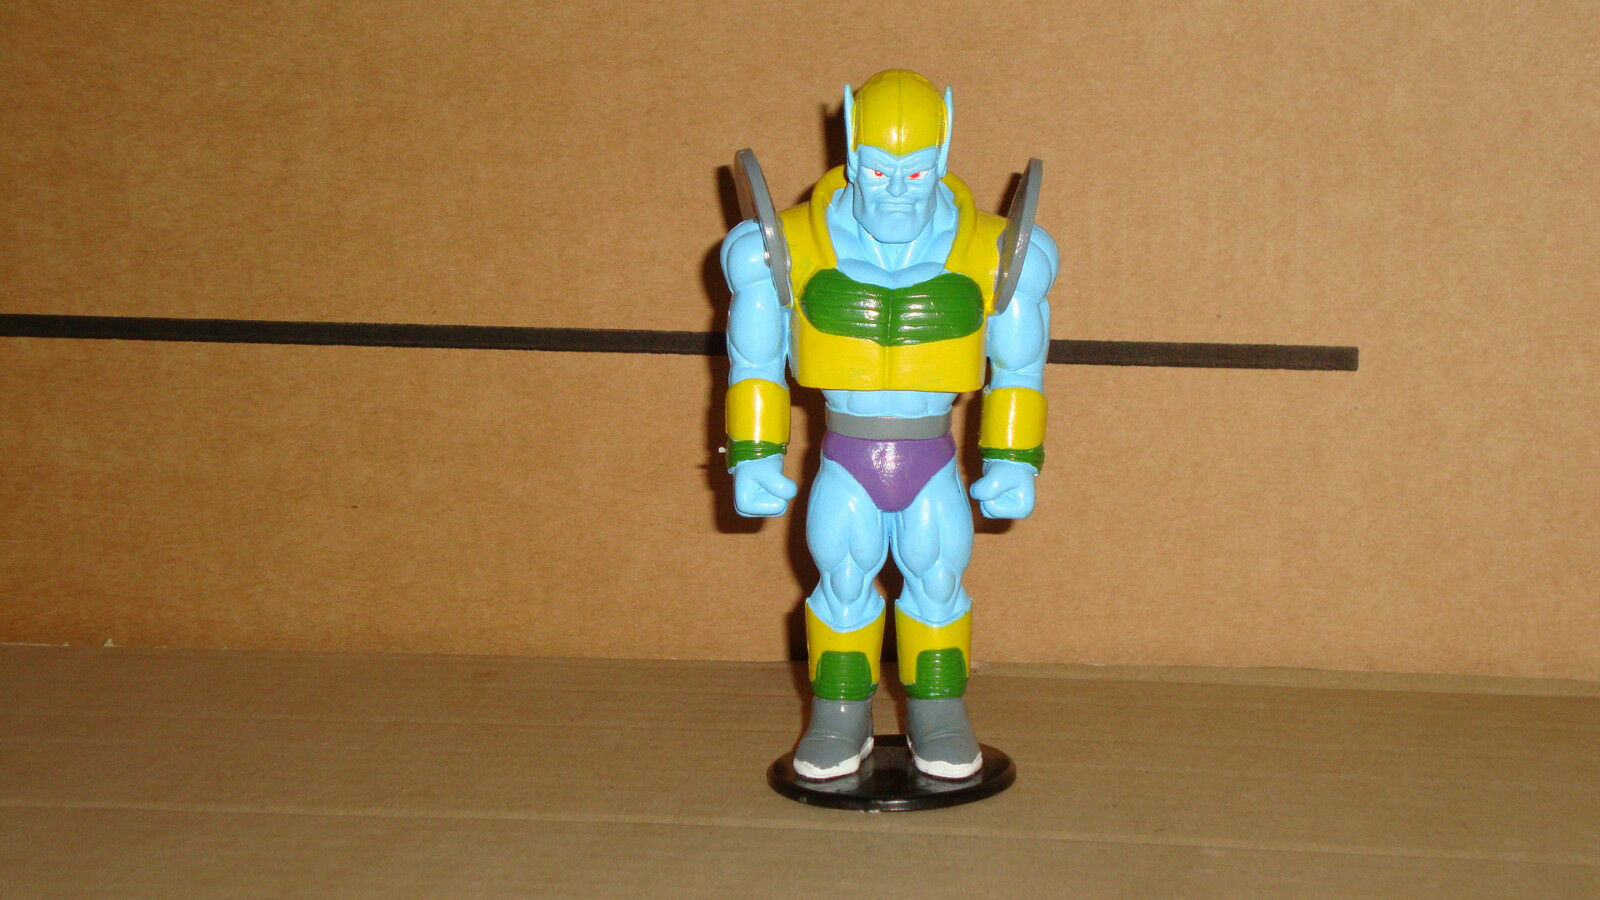 GENERAL RILLD DRAGON BALL ACTION FIGURE BY AGOSTINI IN 1996 SPAIN GOOD CONDITION